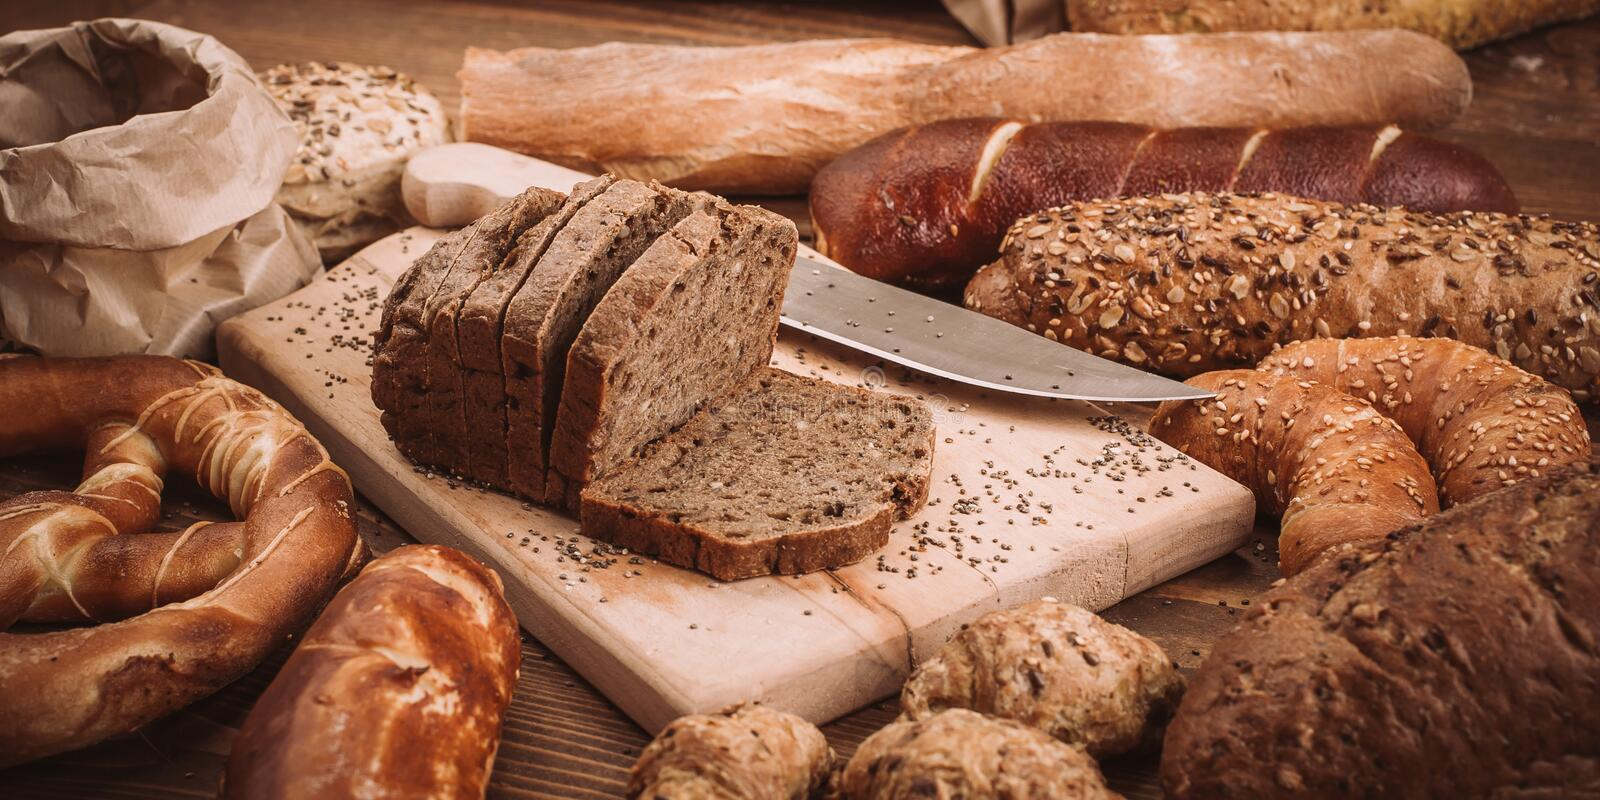 Various baked breads and rolls on rustic wooden table royalty free stock image